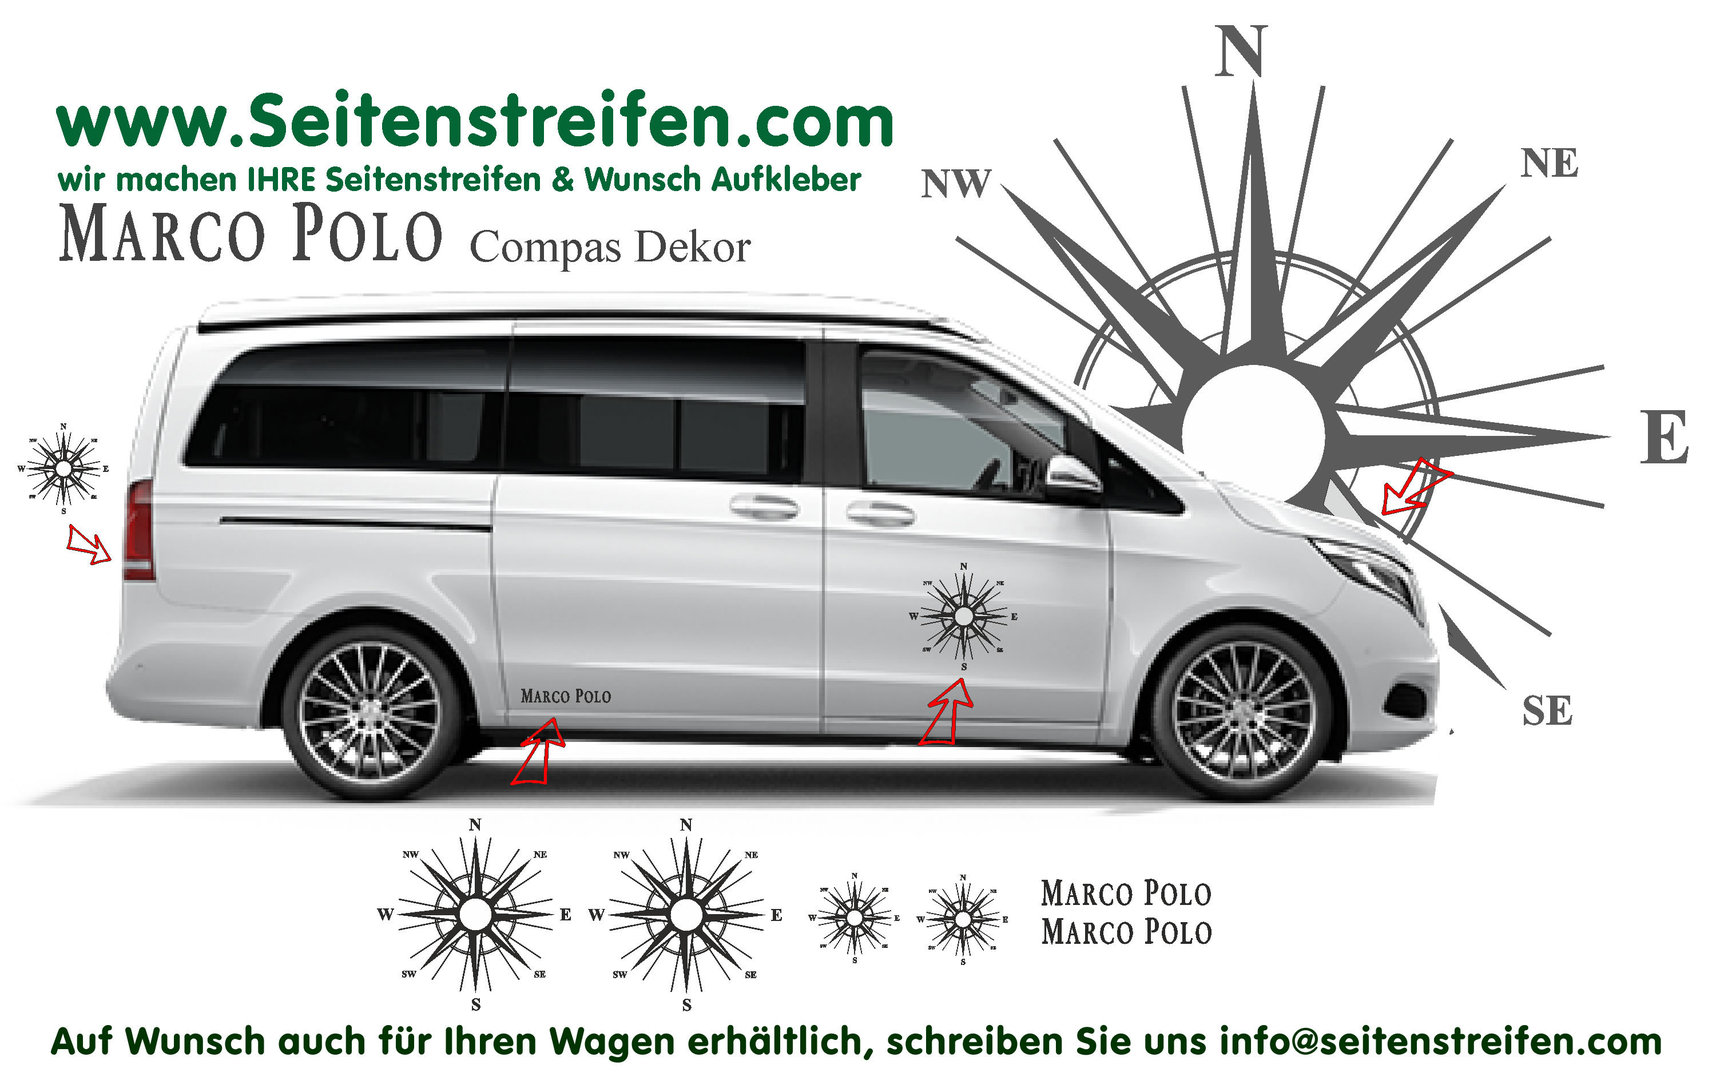 Mercedes Benz Class V Vito - model series 447/693/638 Marco Polo Compas Decals Sticker Kit - N° 8889